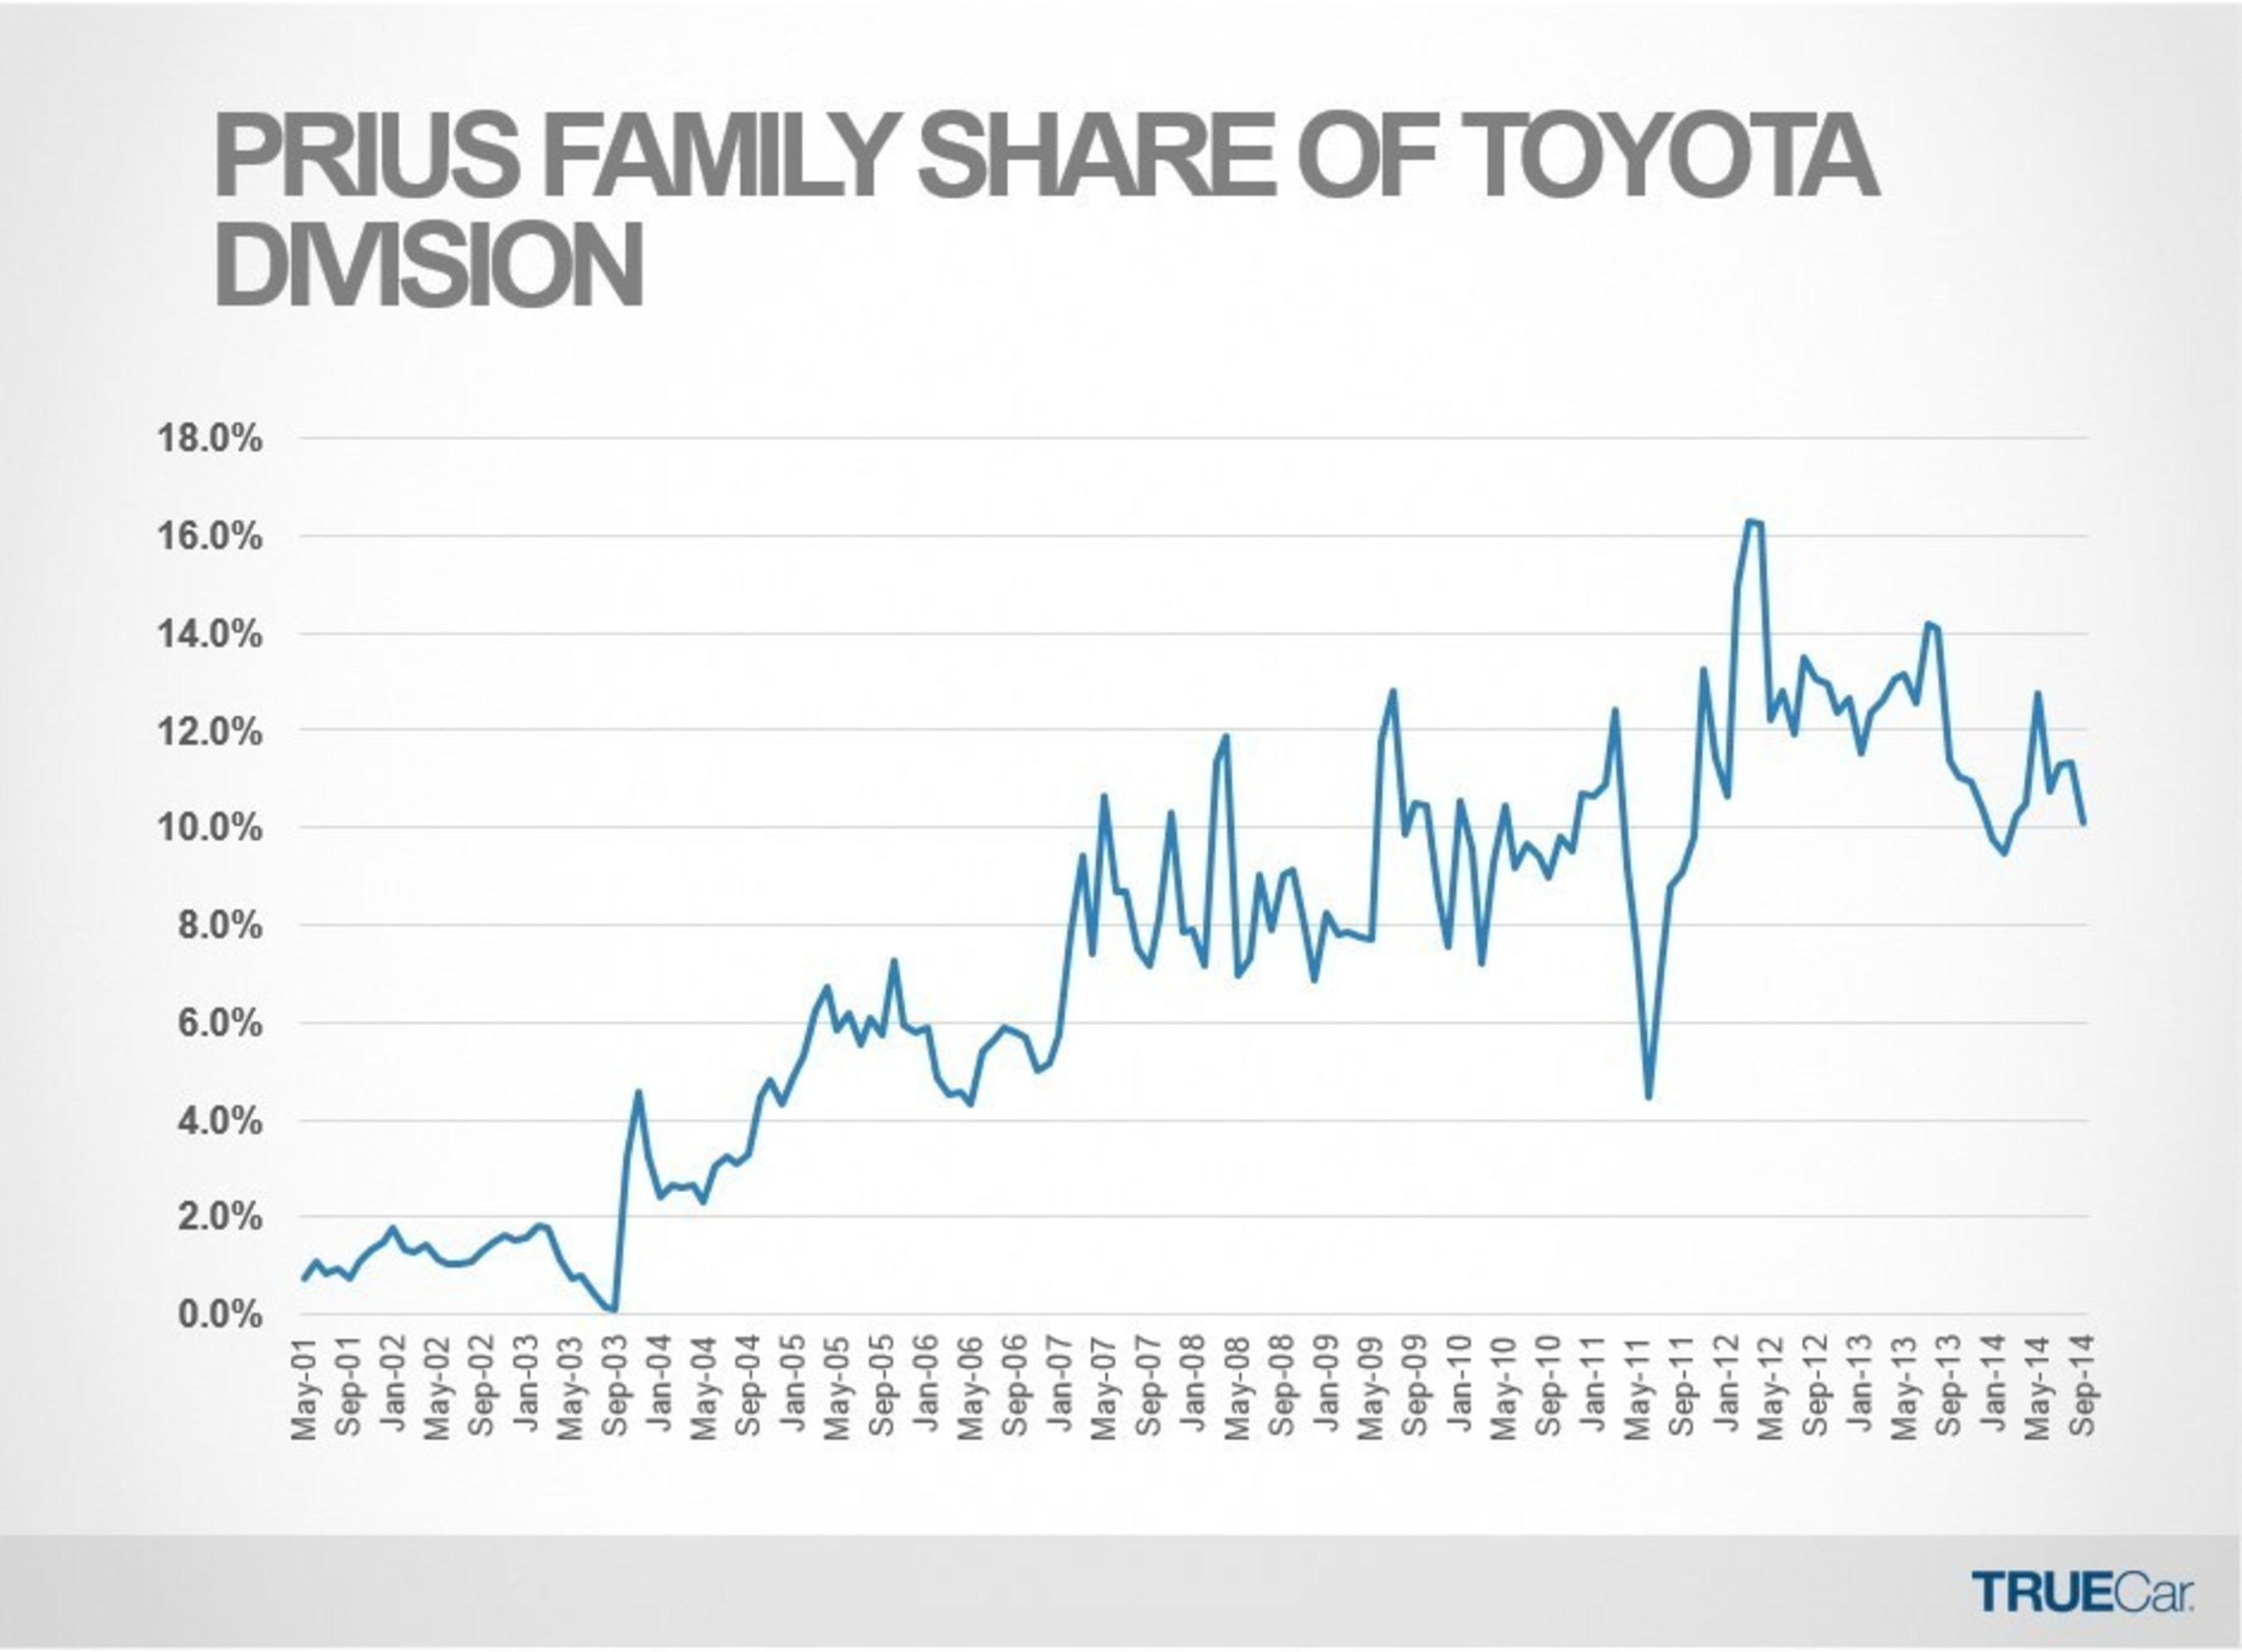 Prius Family Share of Toyota Division